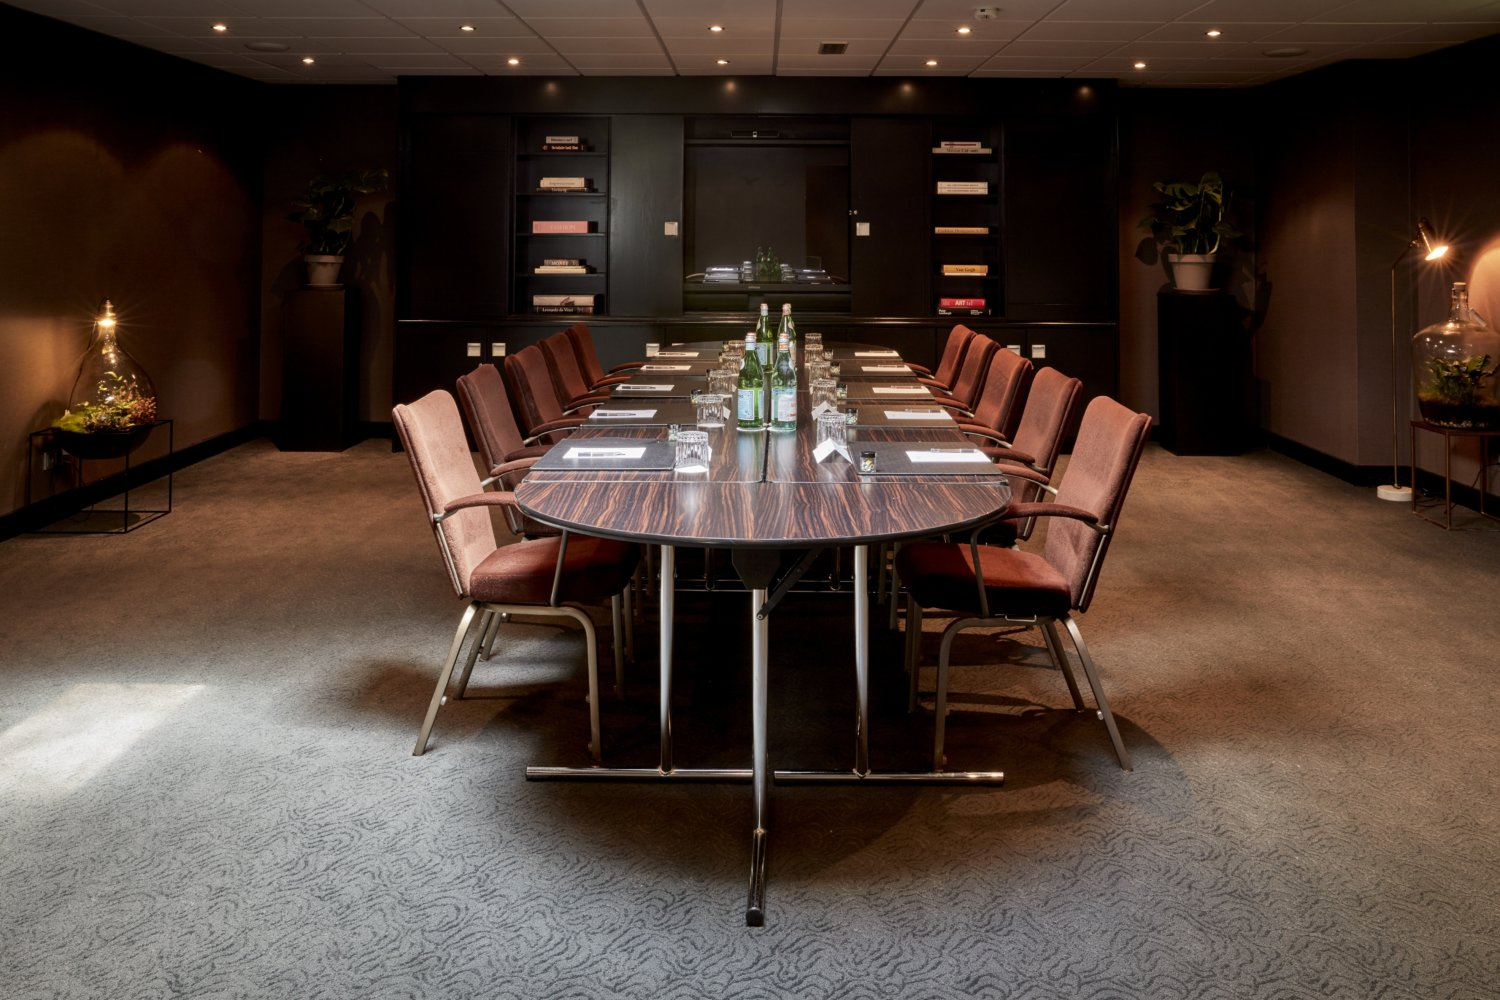 Park hotel amsterdam meeting room Berlin meetings and events